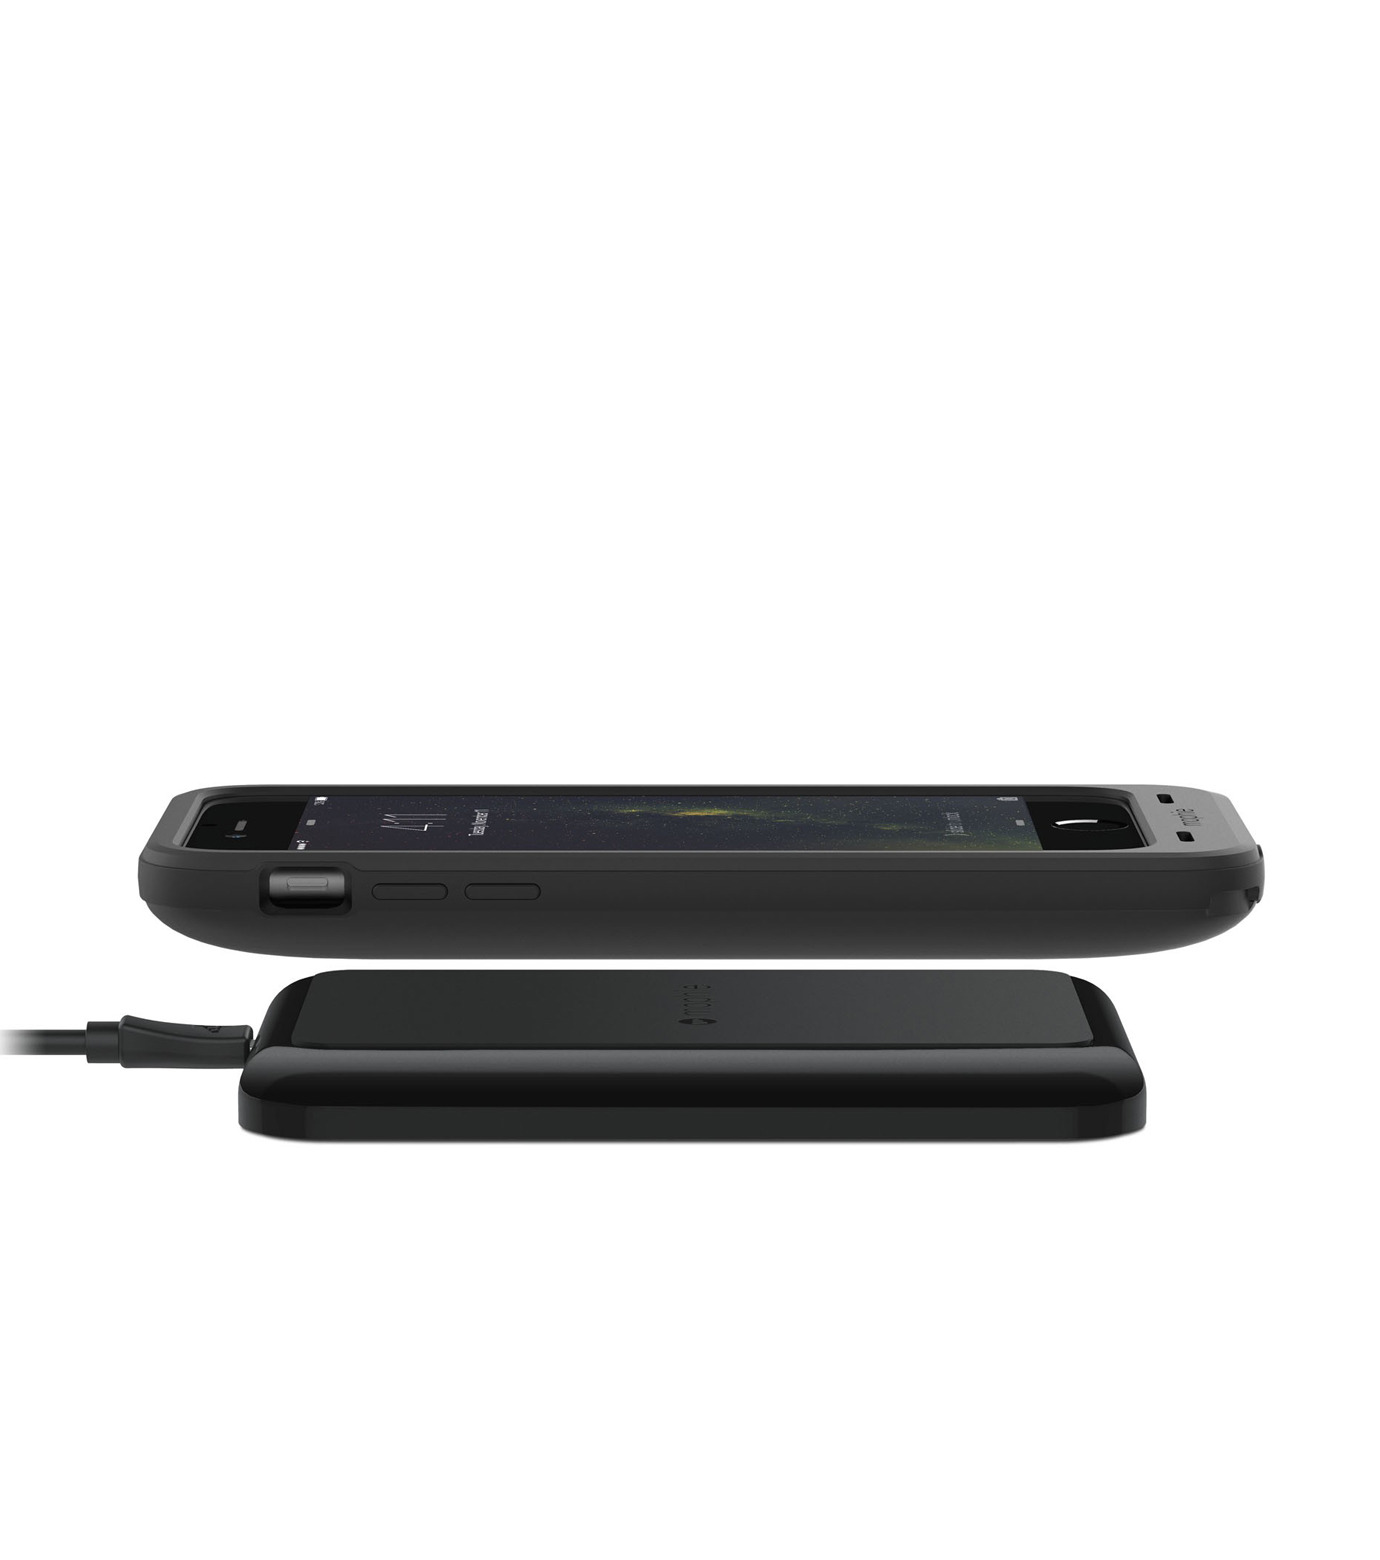 Mophie(モーフィー)のmophie juice pack wireless for iPhone6 Plus-BLACK(ケースiphone6plus/6splus/case iphone6plus/6splus)-MOP-PH-0144-13 拡大詳細画像5